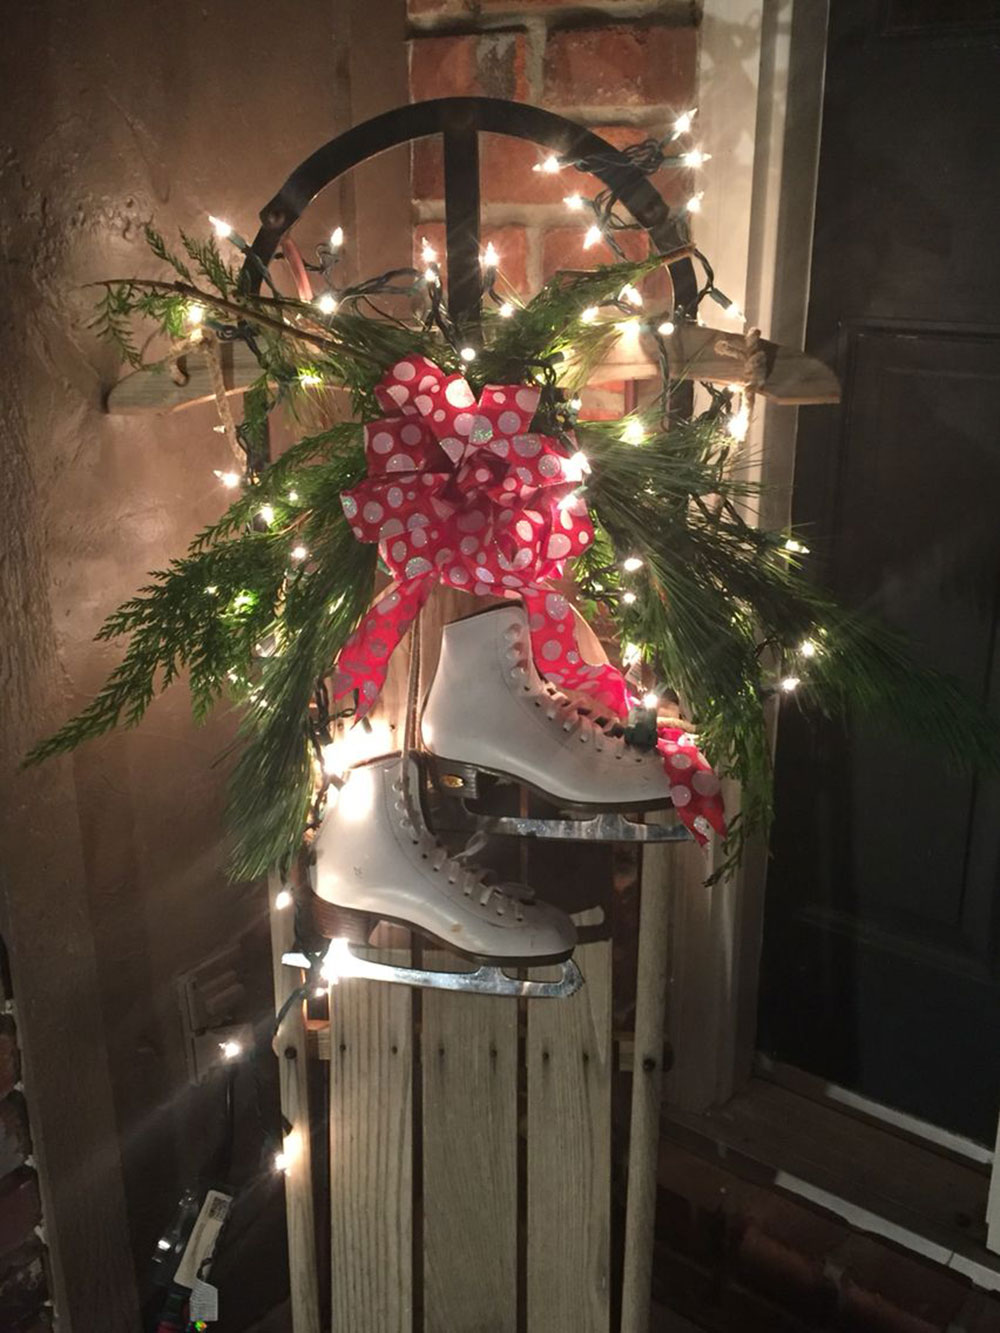 Vintage sled to use outdoor Christmas lights ideas for decorating your home